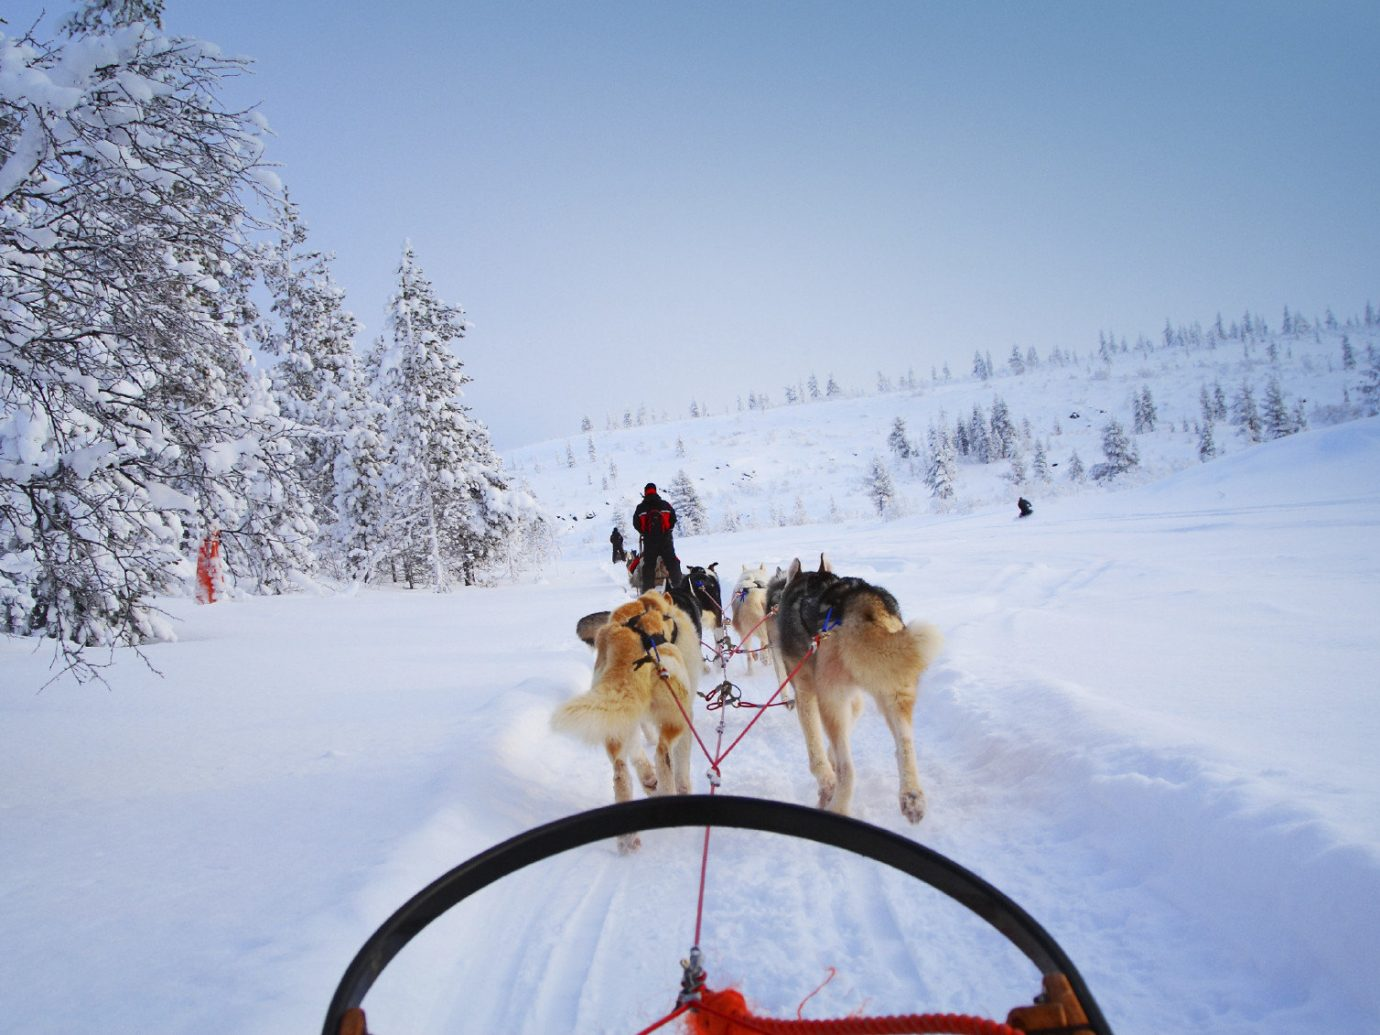 Adventure Trip Ideas snow outdoor sky transport dog sled vehicle land vehicle mushing Winter season sled dog racing sled